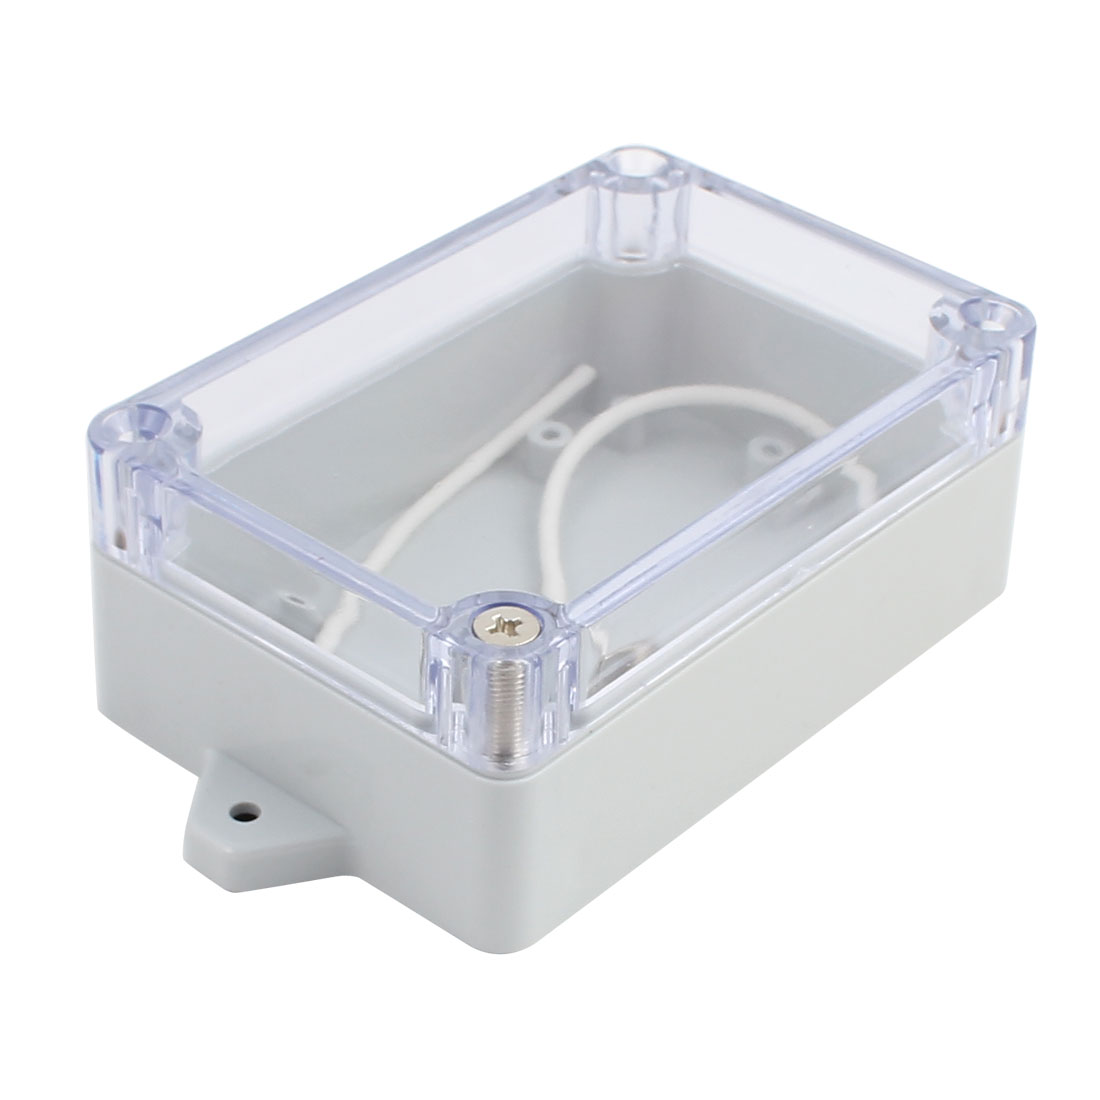 100x68x40mm Screw Mount Waterproof ABS Junction Box Enclosure w PC Clear Cover - image 3 of 3